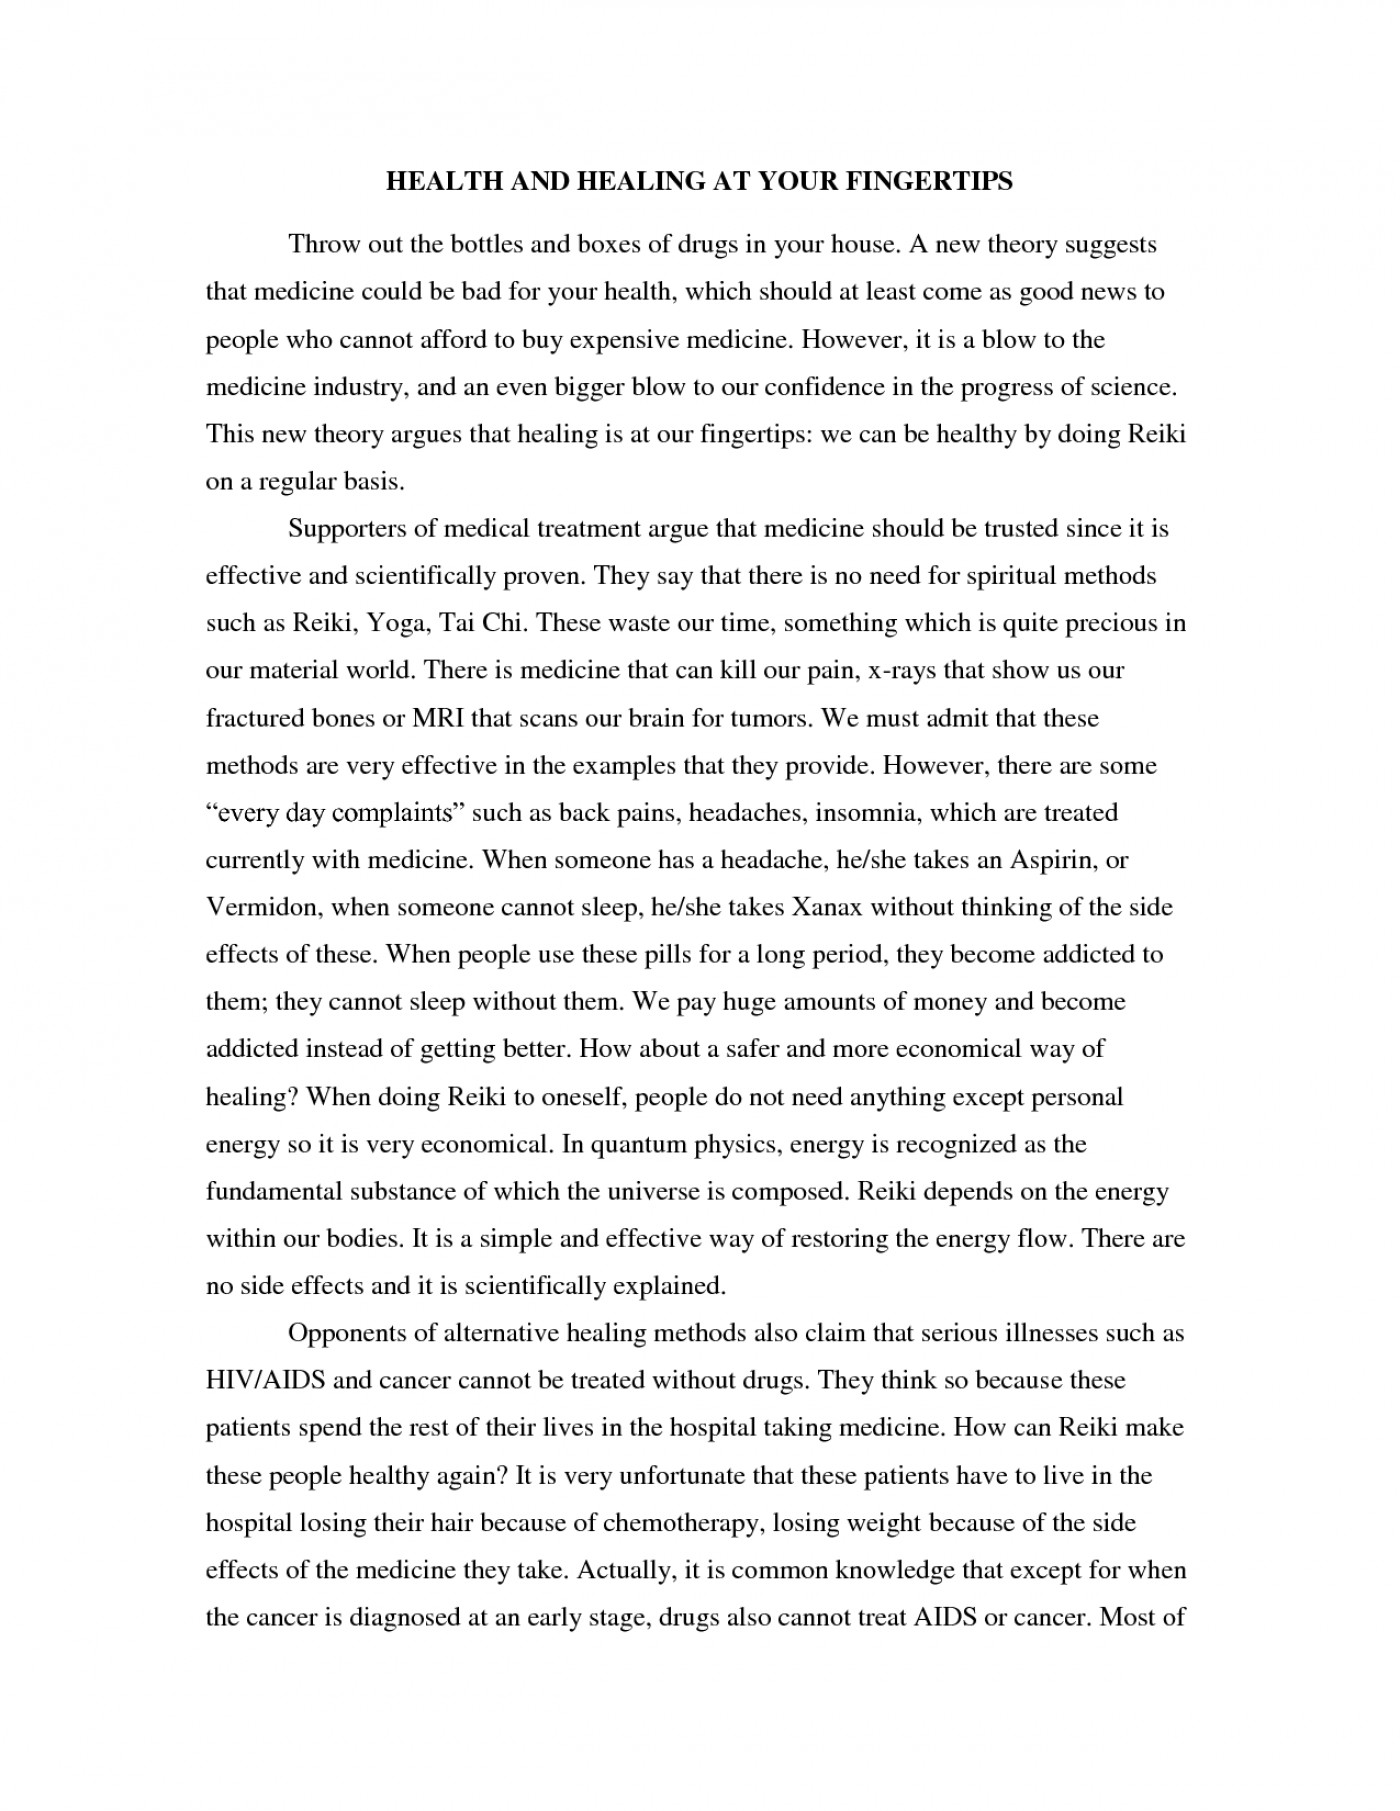 016 Mentor Argument Essay Page How To Write Good Argumentatives Astounding Argumentative Examples Ap Lang Sample Pdf Download For Middle School 1400